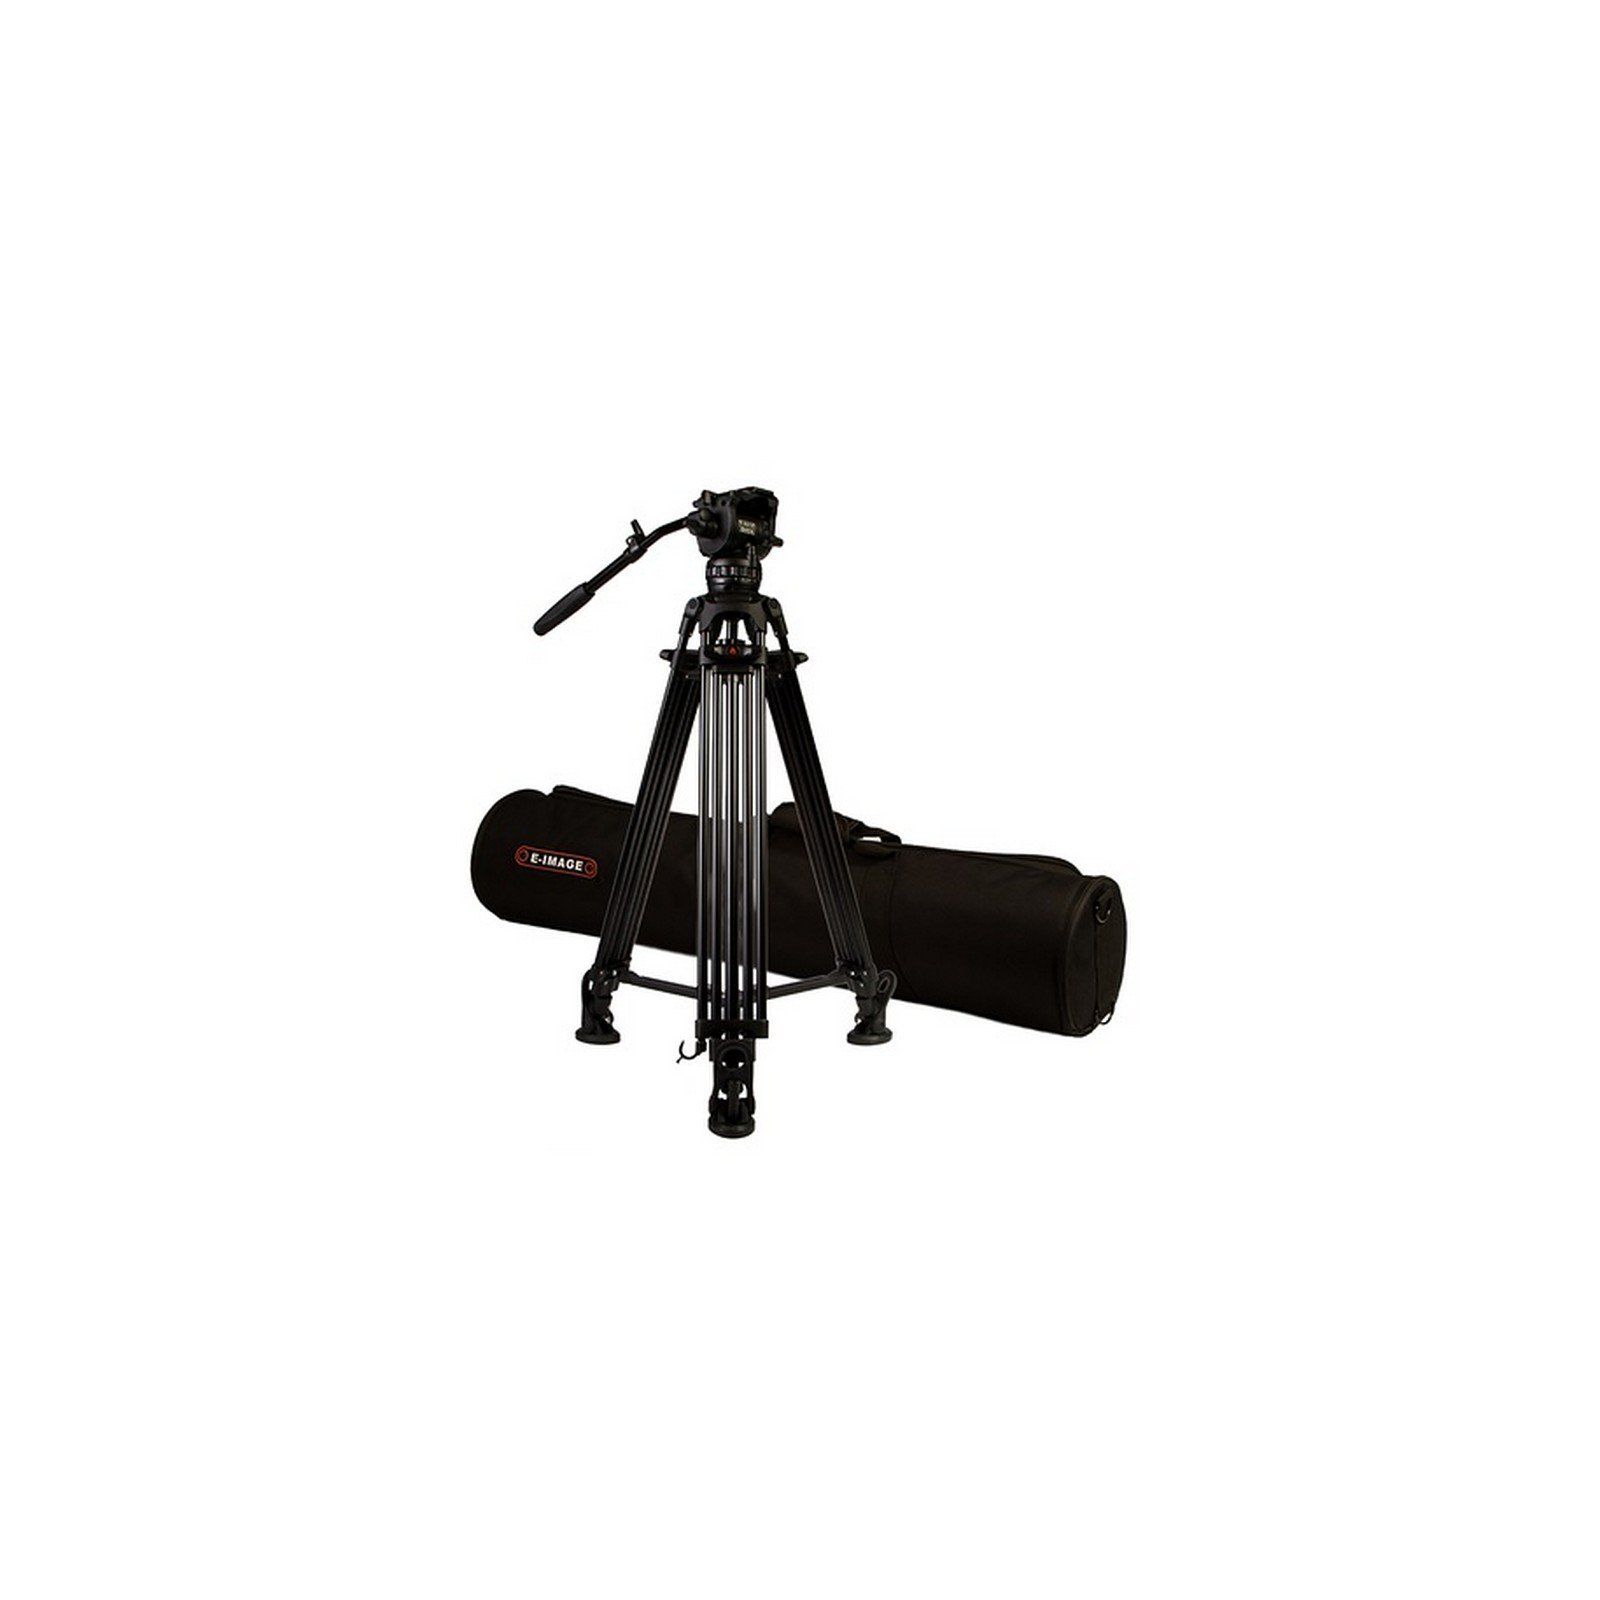 Ikan EG06A2 | Aluminum 2 Stage Tripod with GH06 Head Transport Bag by Ikan